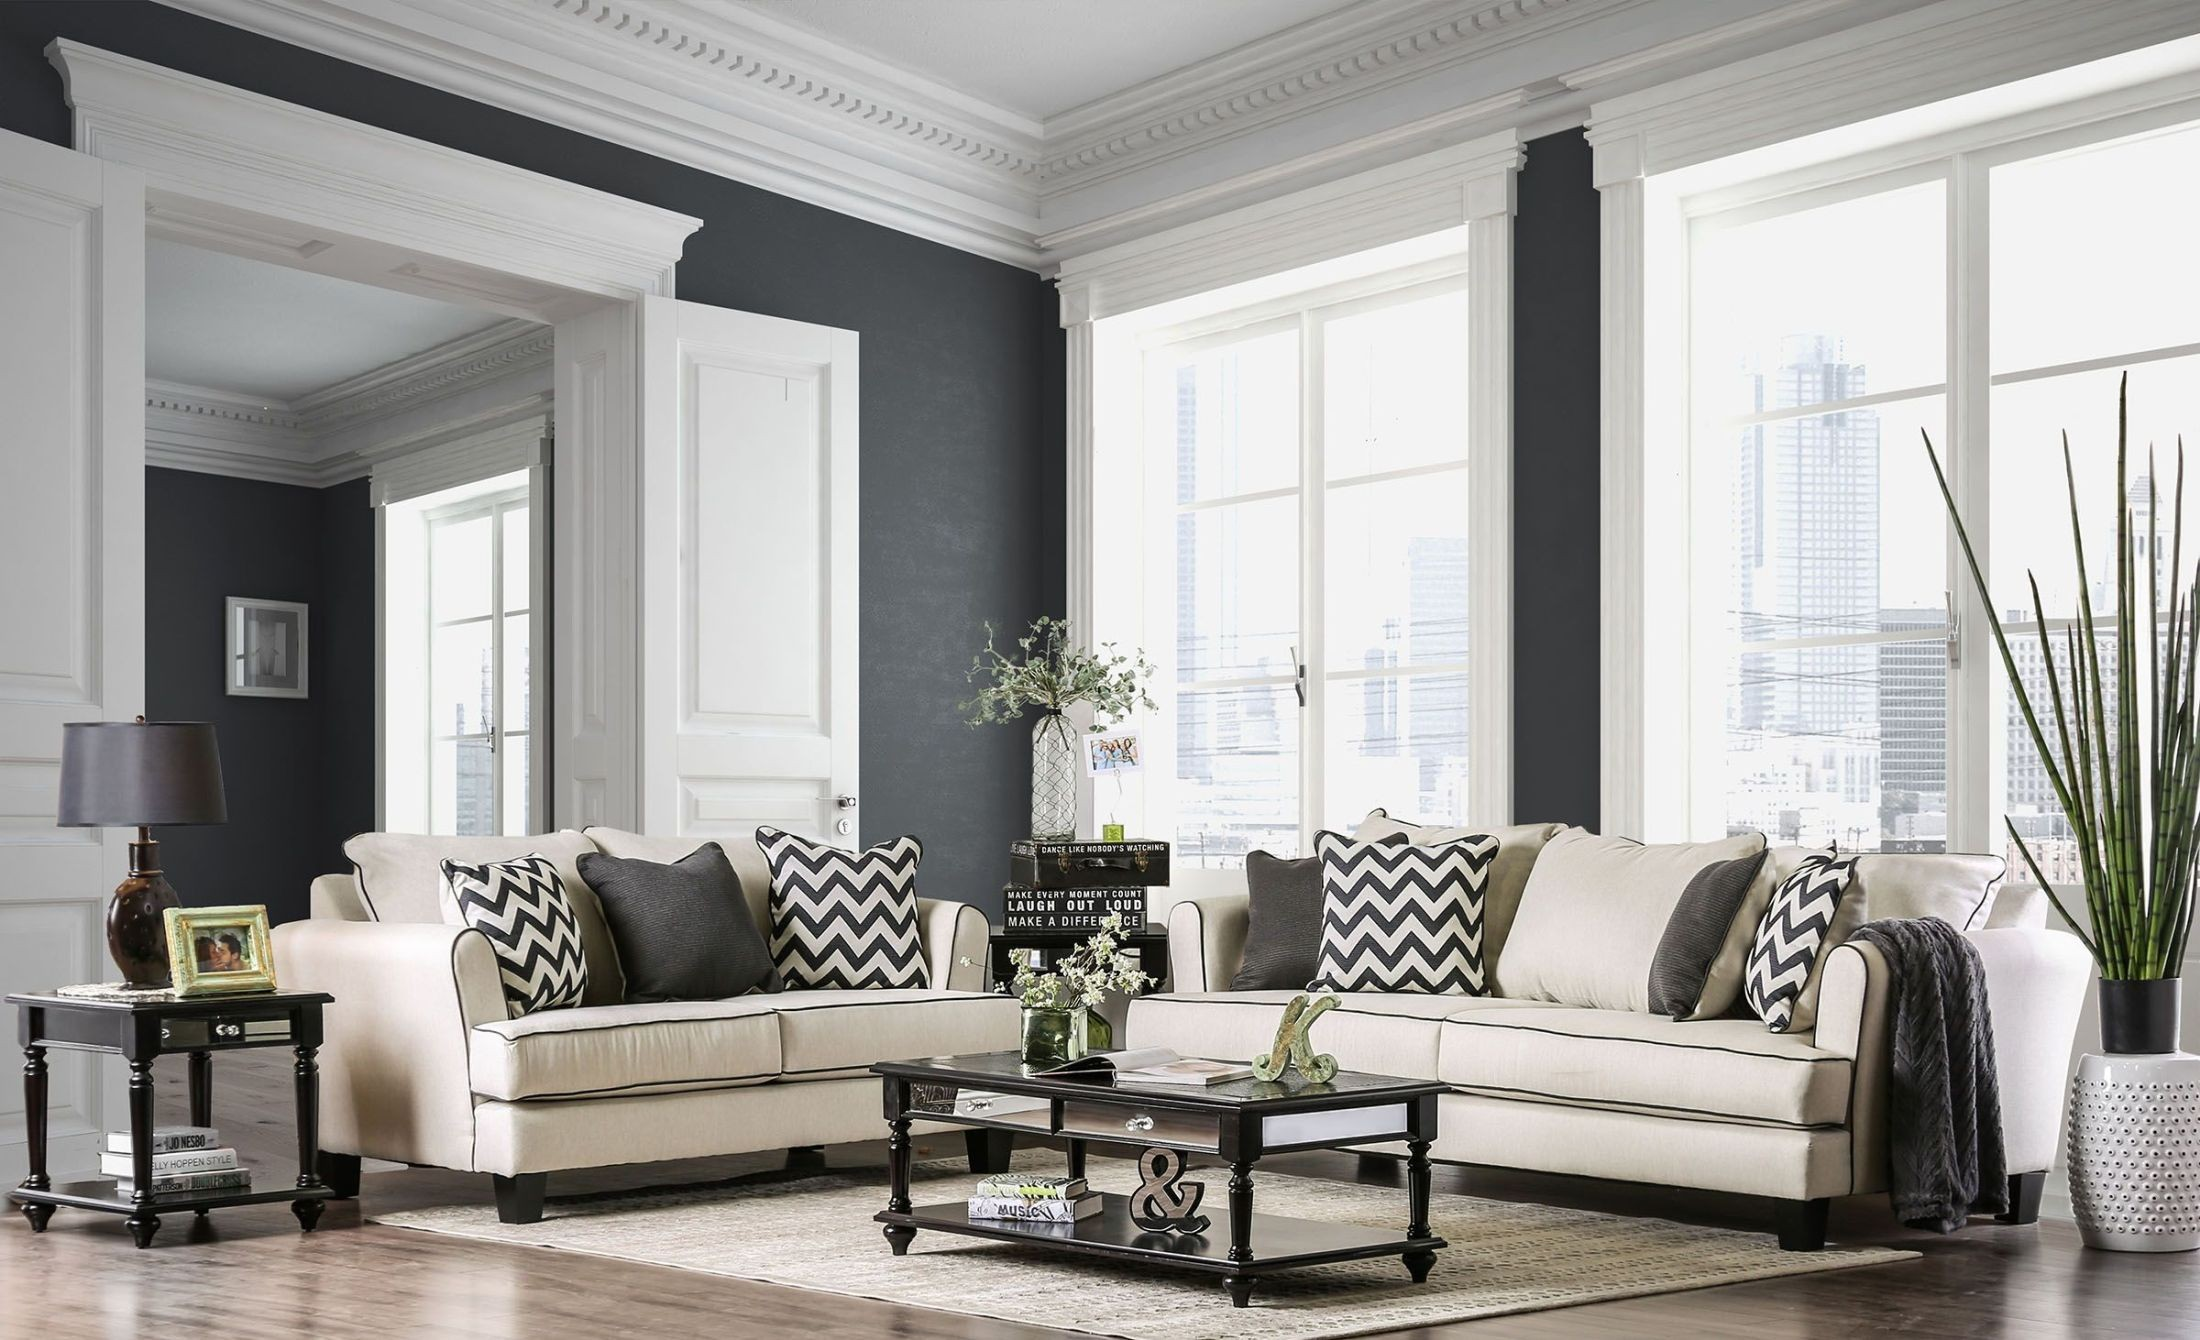 Percey off white living room set from furniture of america Pictures of white living rooms